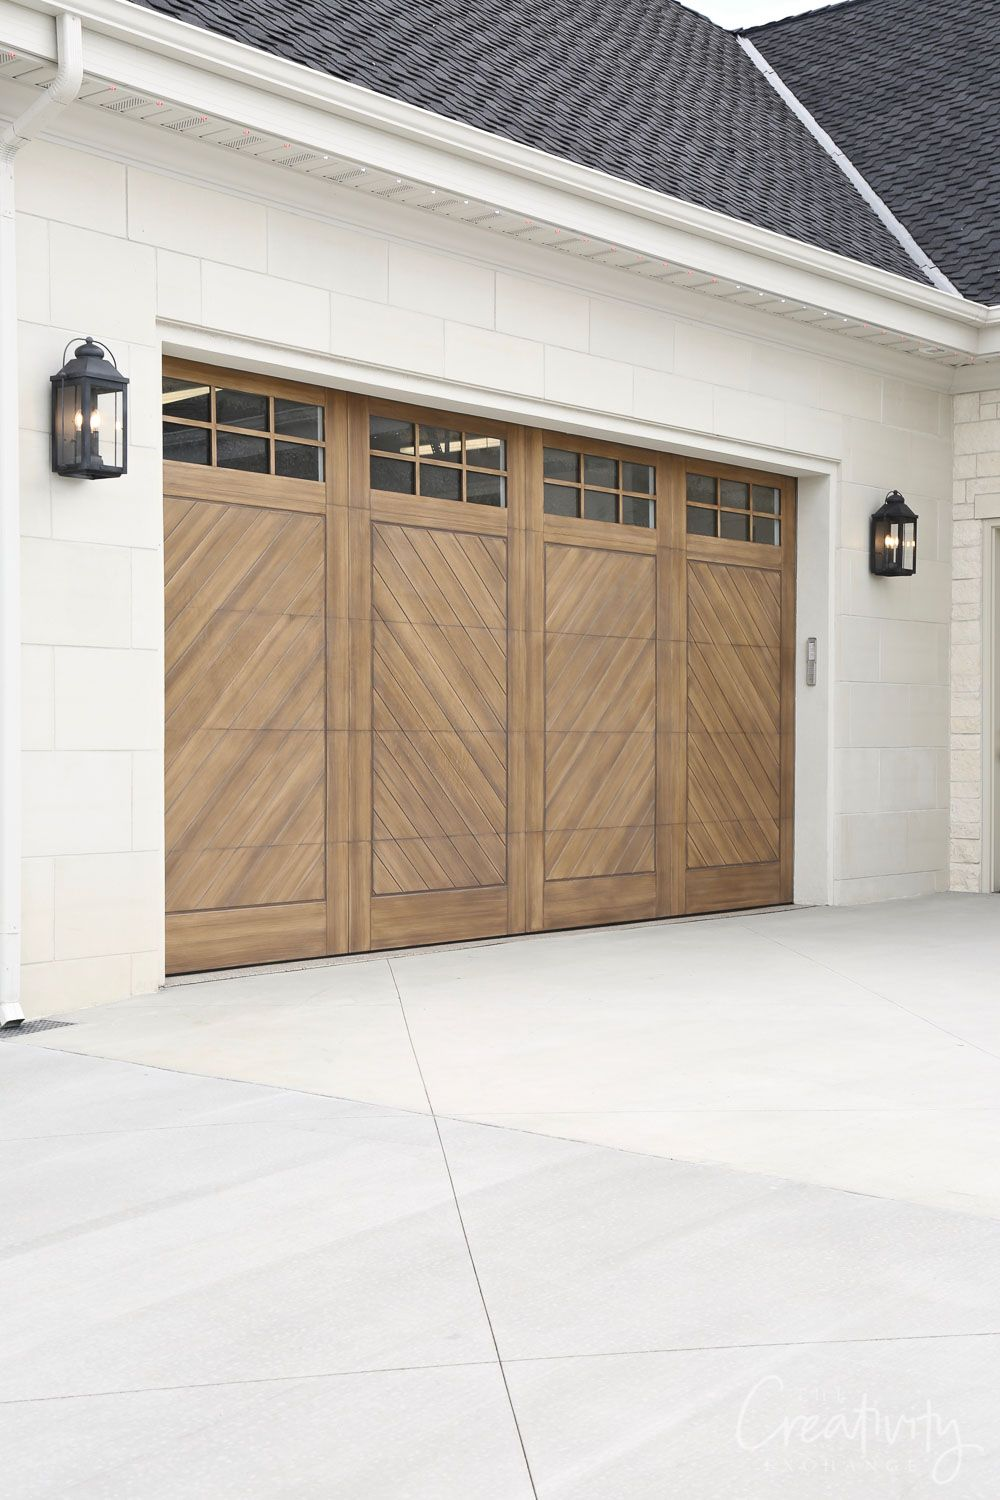 Utah Valley Parade Of Homes 2019 Garage Door Design Modern Garage Doors Wood Garage Doors